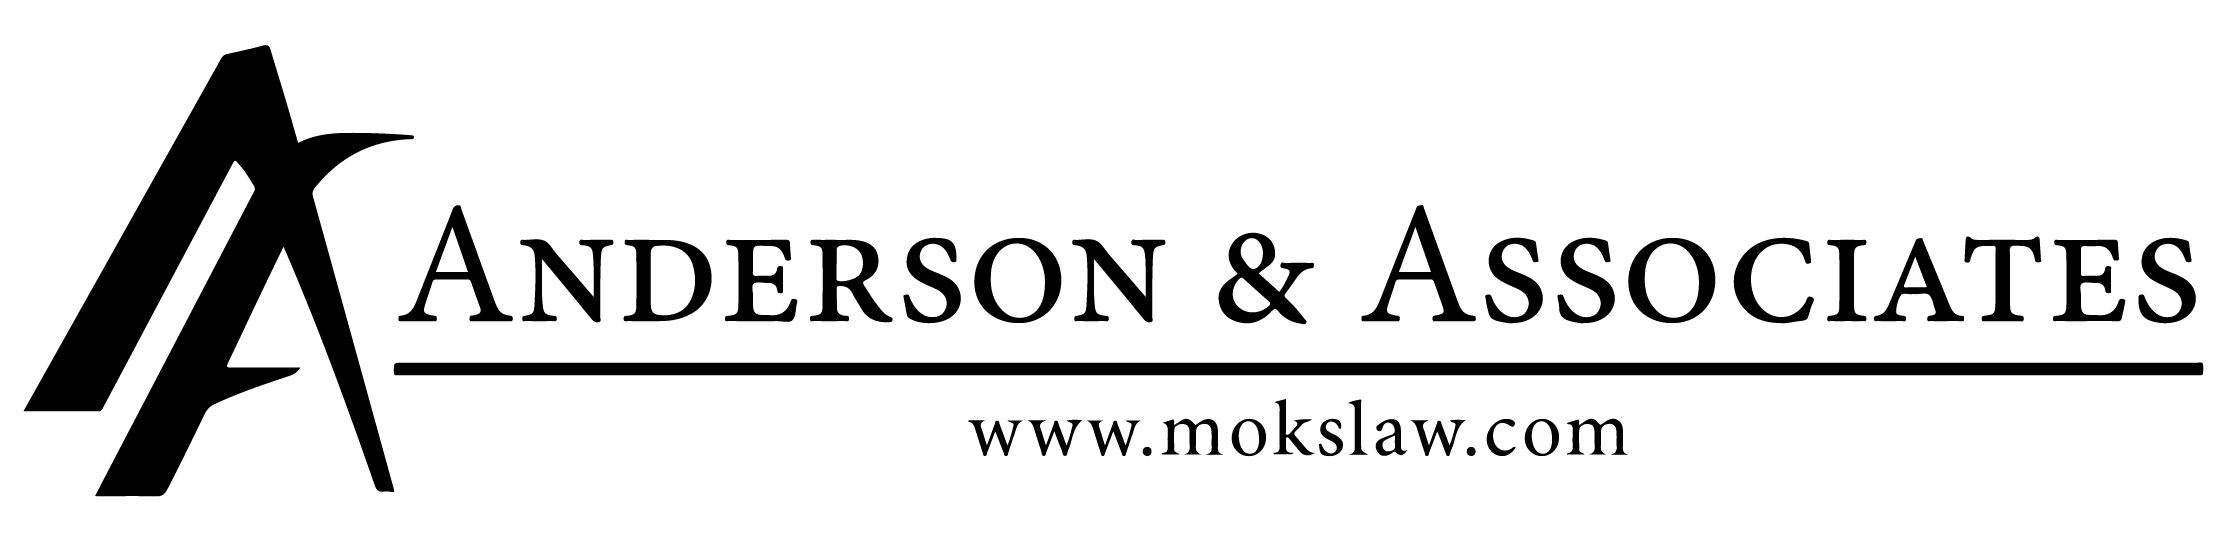 Anderson & Associates is a law firm practicing in Missouri and Kansas. Julie Anderson, Attorney at Law, is Owner and Managing Partner.